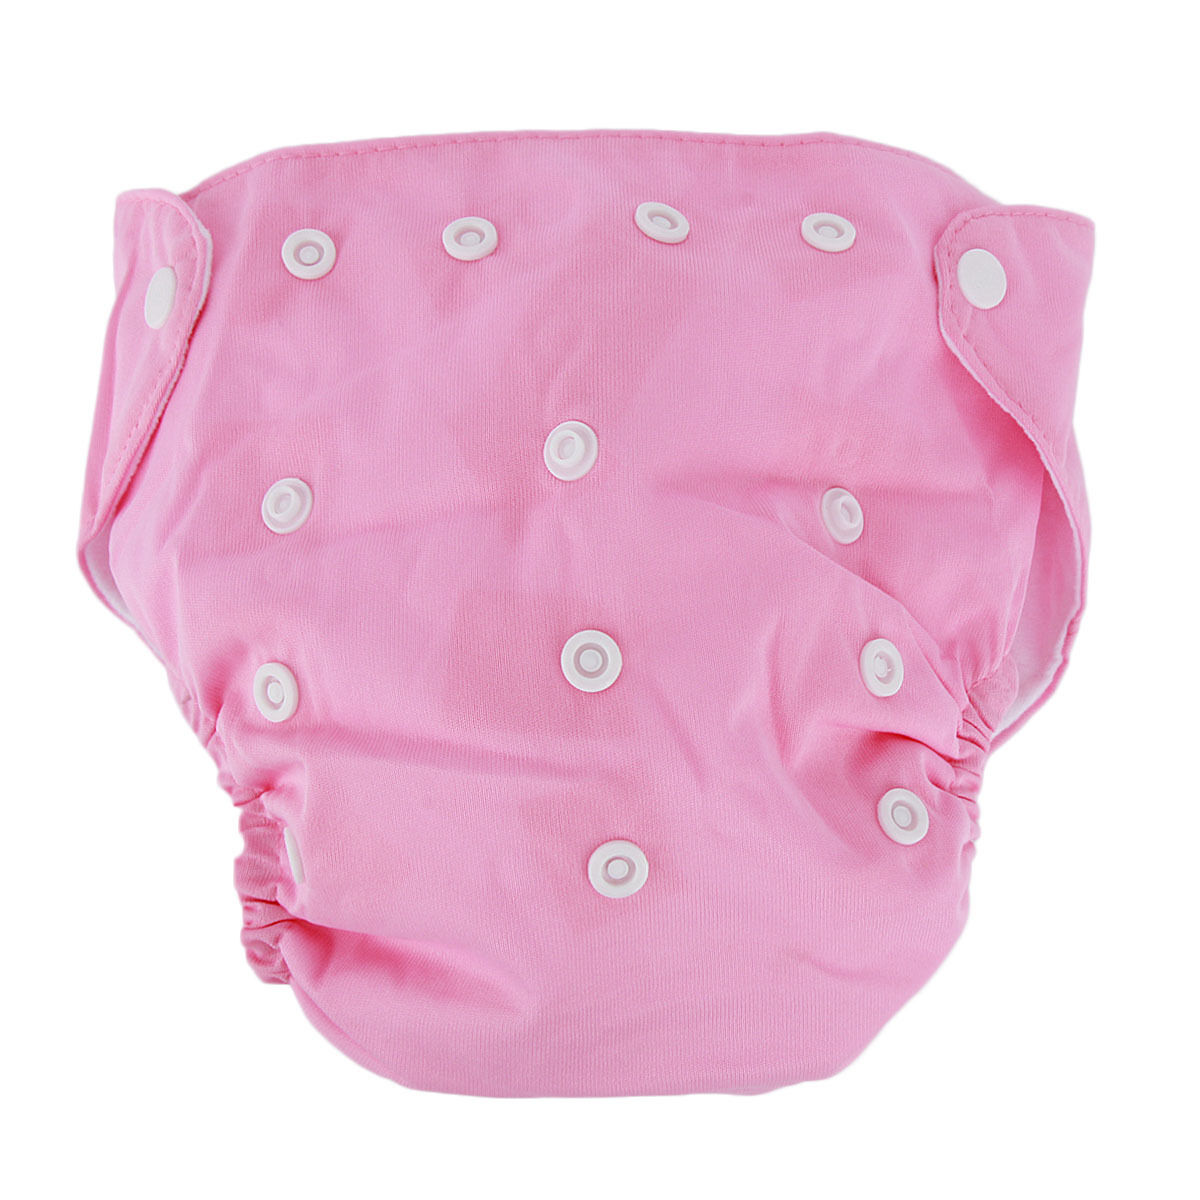 5pcs+ 5Inserts Adjustable Reusable Baby Washable Infant Nappy Soft Cloth Diapers Pink